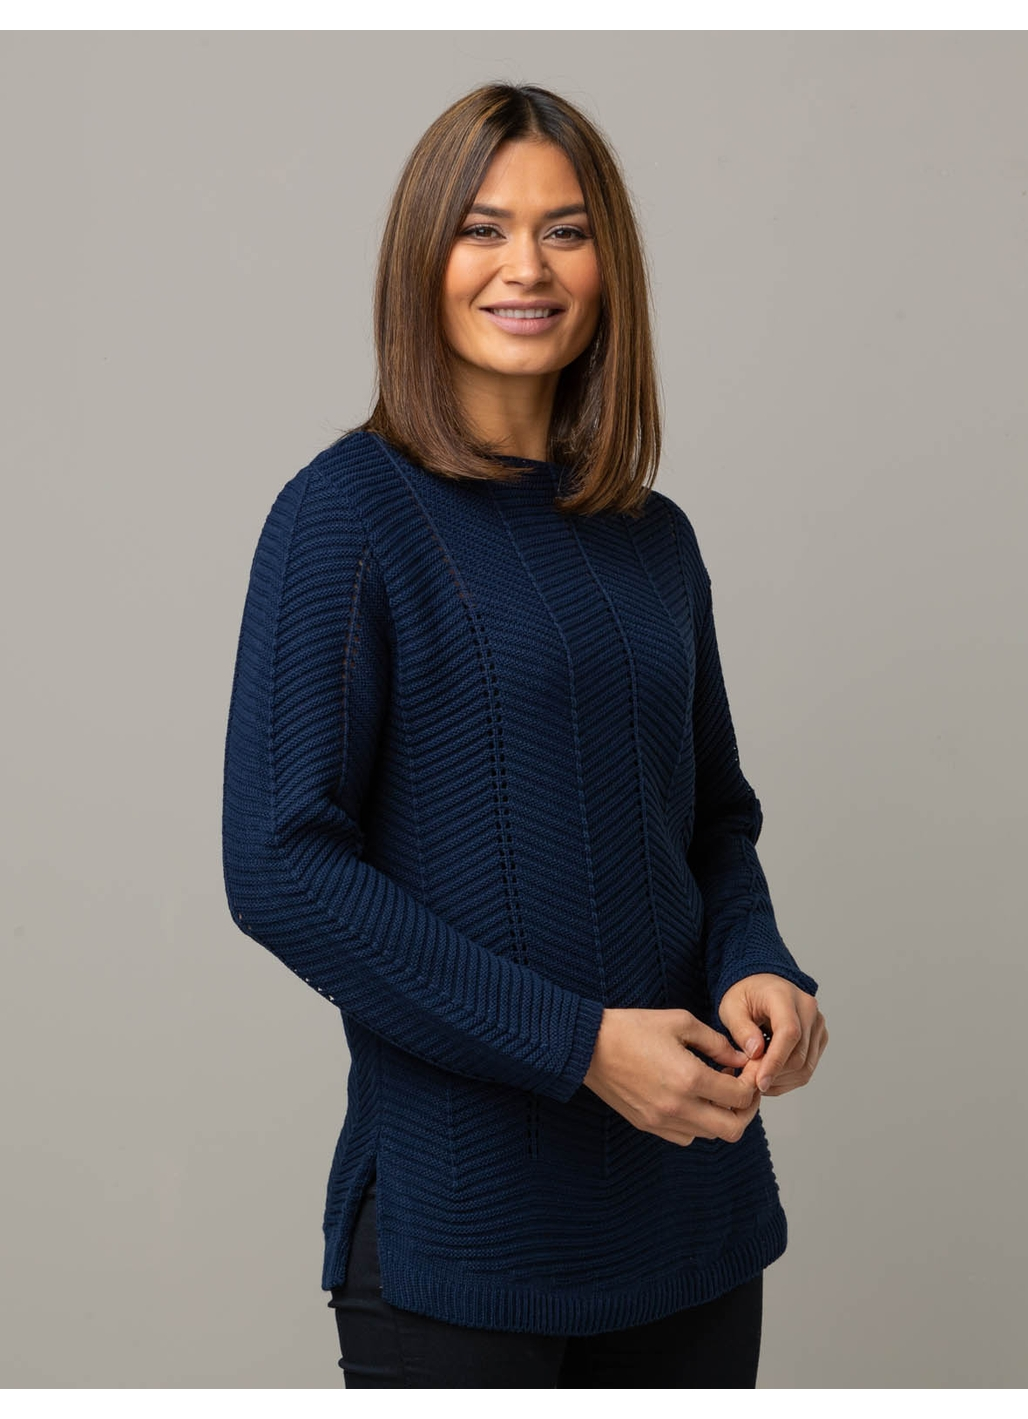 Cleo UK Knitted Jumper in Navy